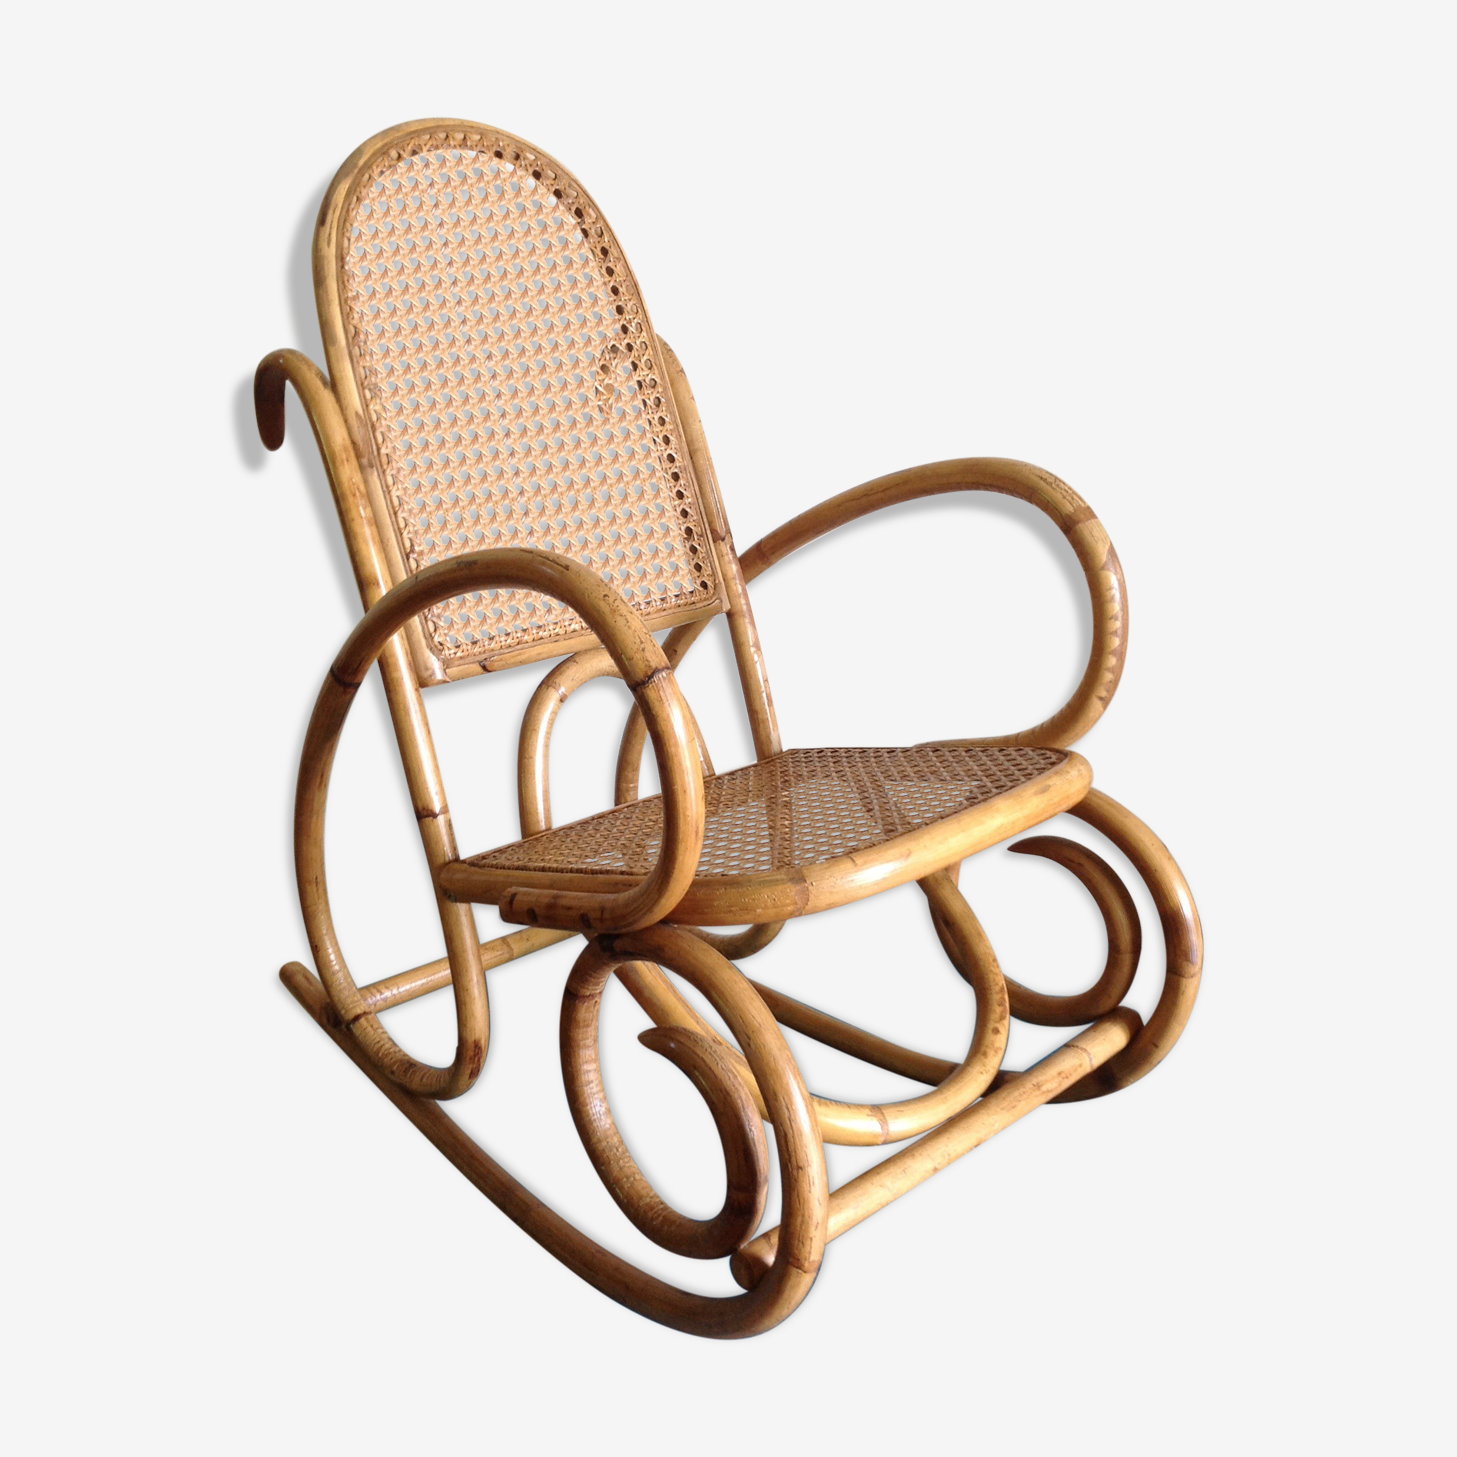 Rocking-chair enfant rotin osier cané rétro ancien vintage